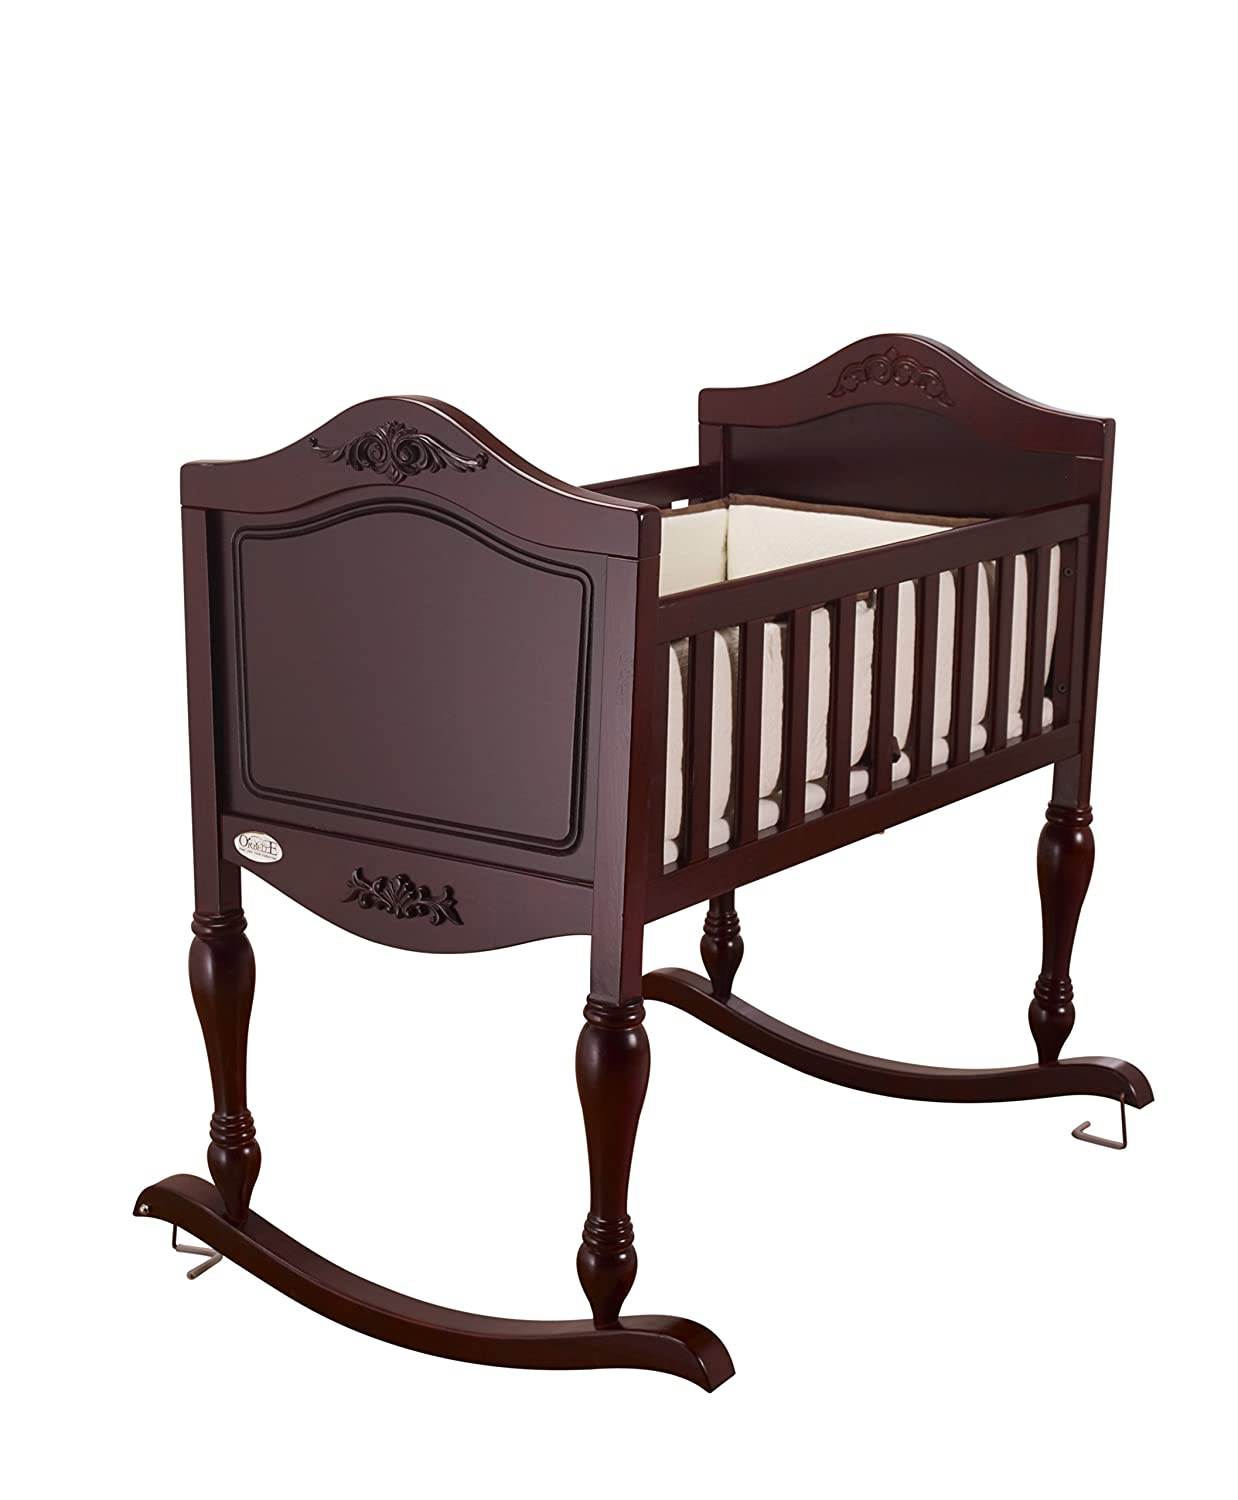 Orbelle Trading Ga Ga Cradle, French White 8000FW